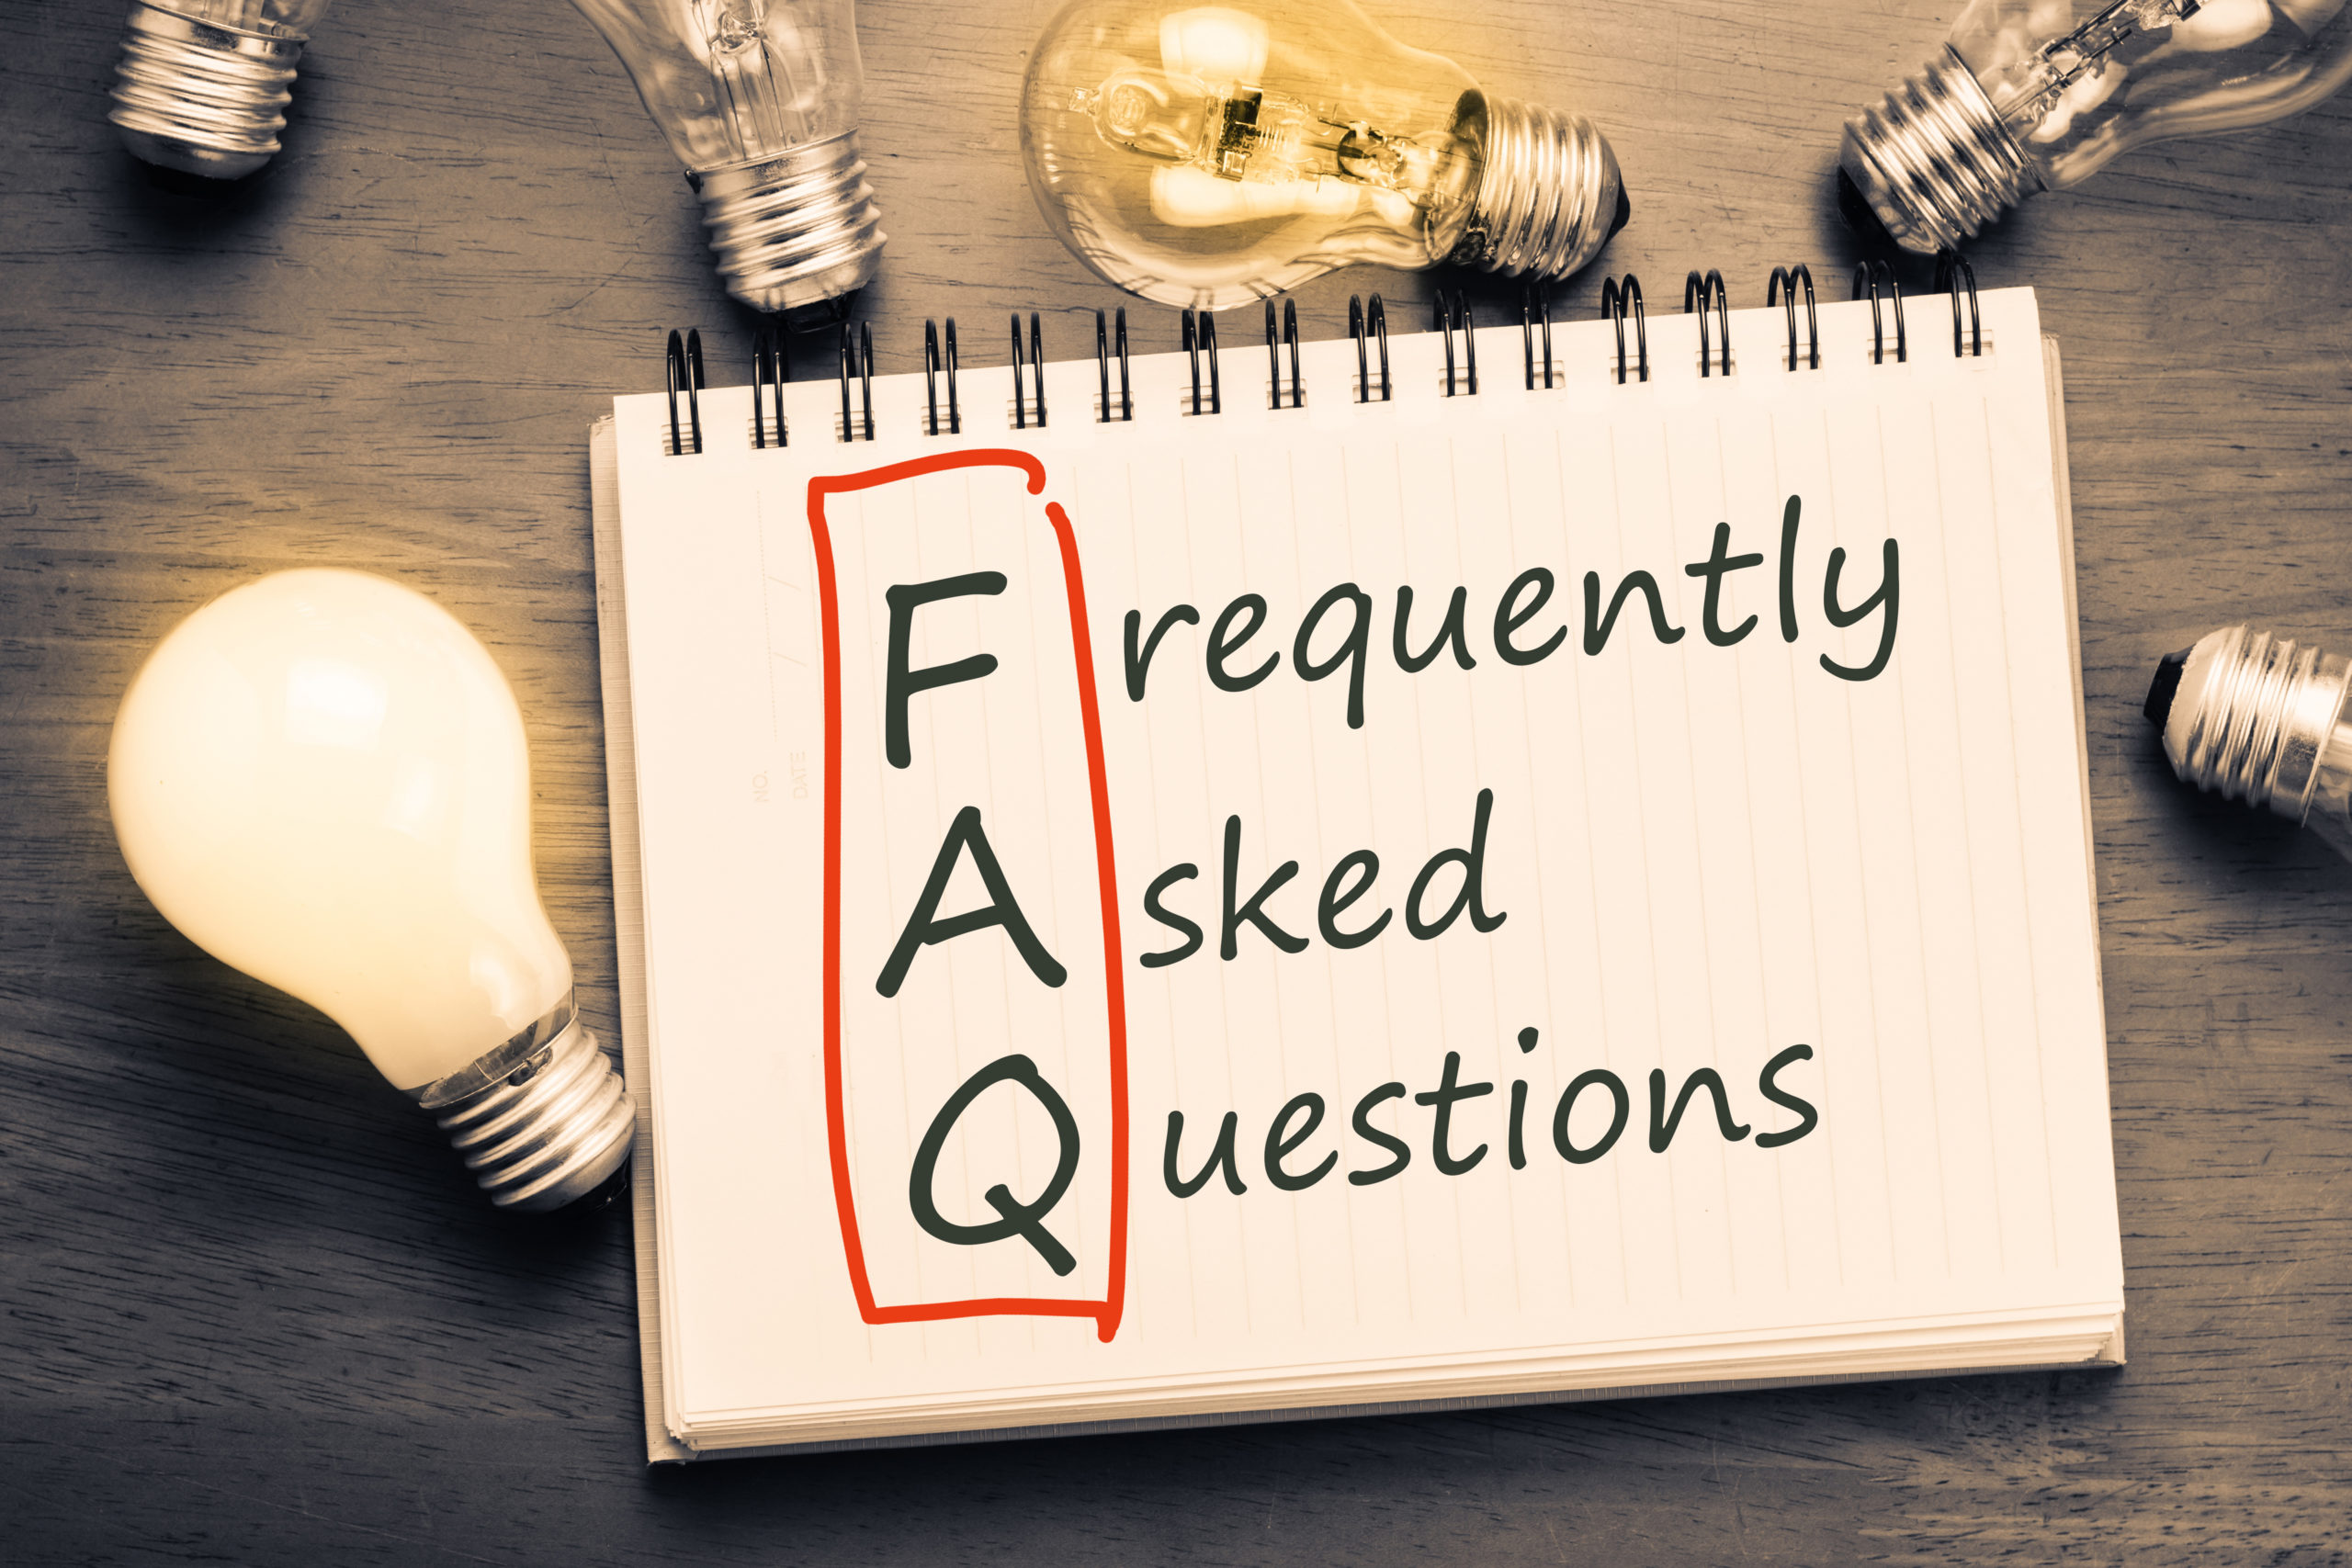 Frequently Asked Questions Text